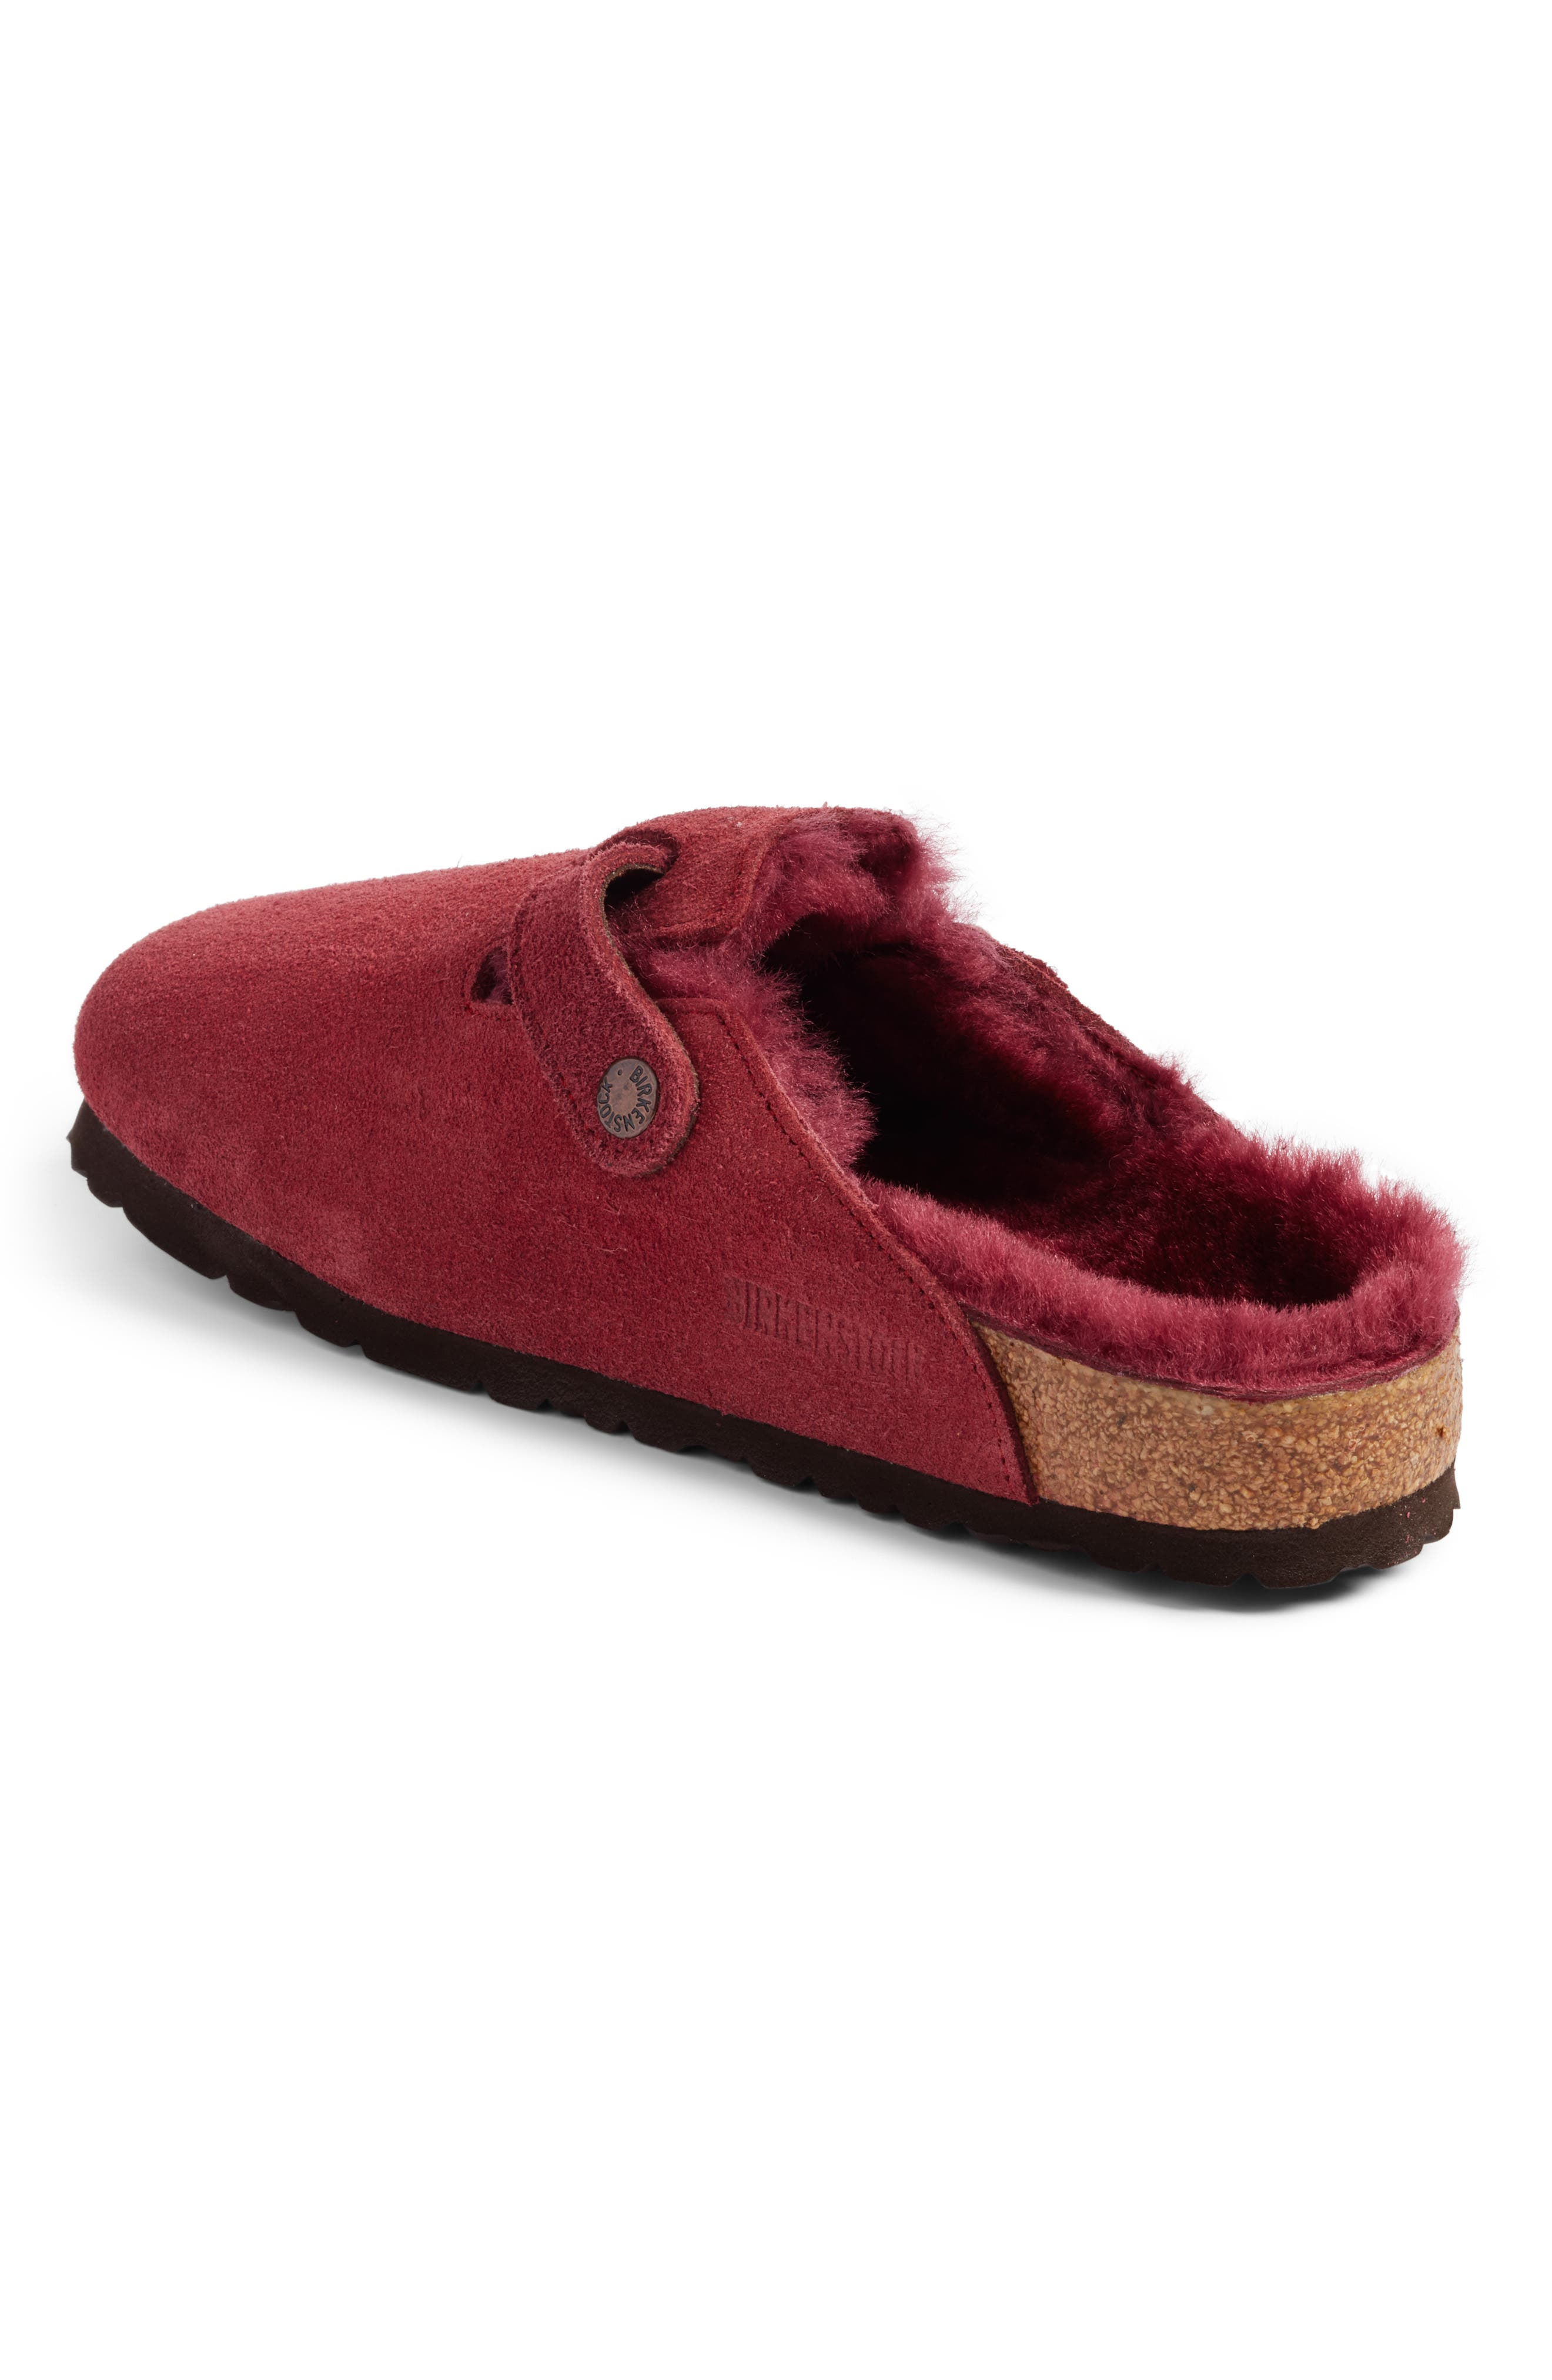 Boston Genuine Shearling Lined Clog,                             Alternate thumbnail 2, color,                             930